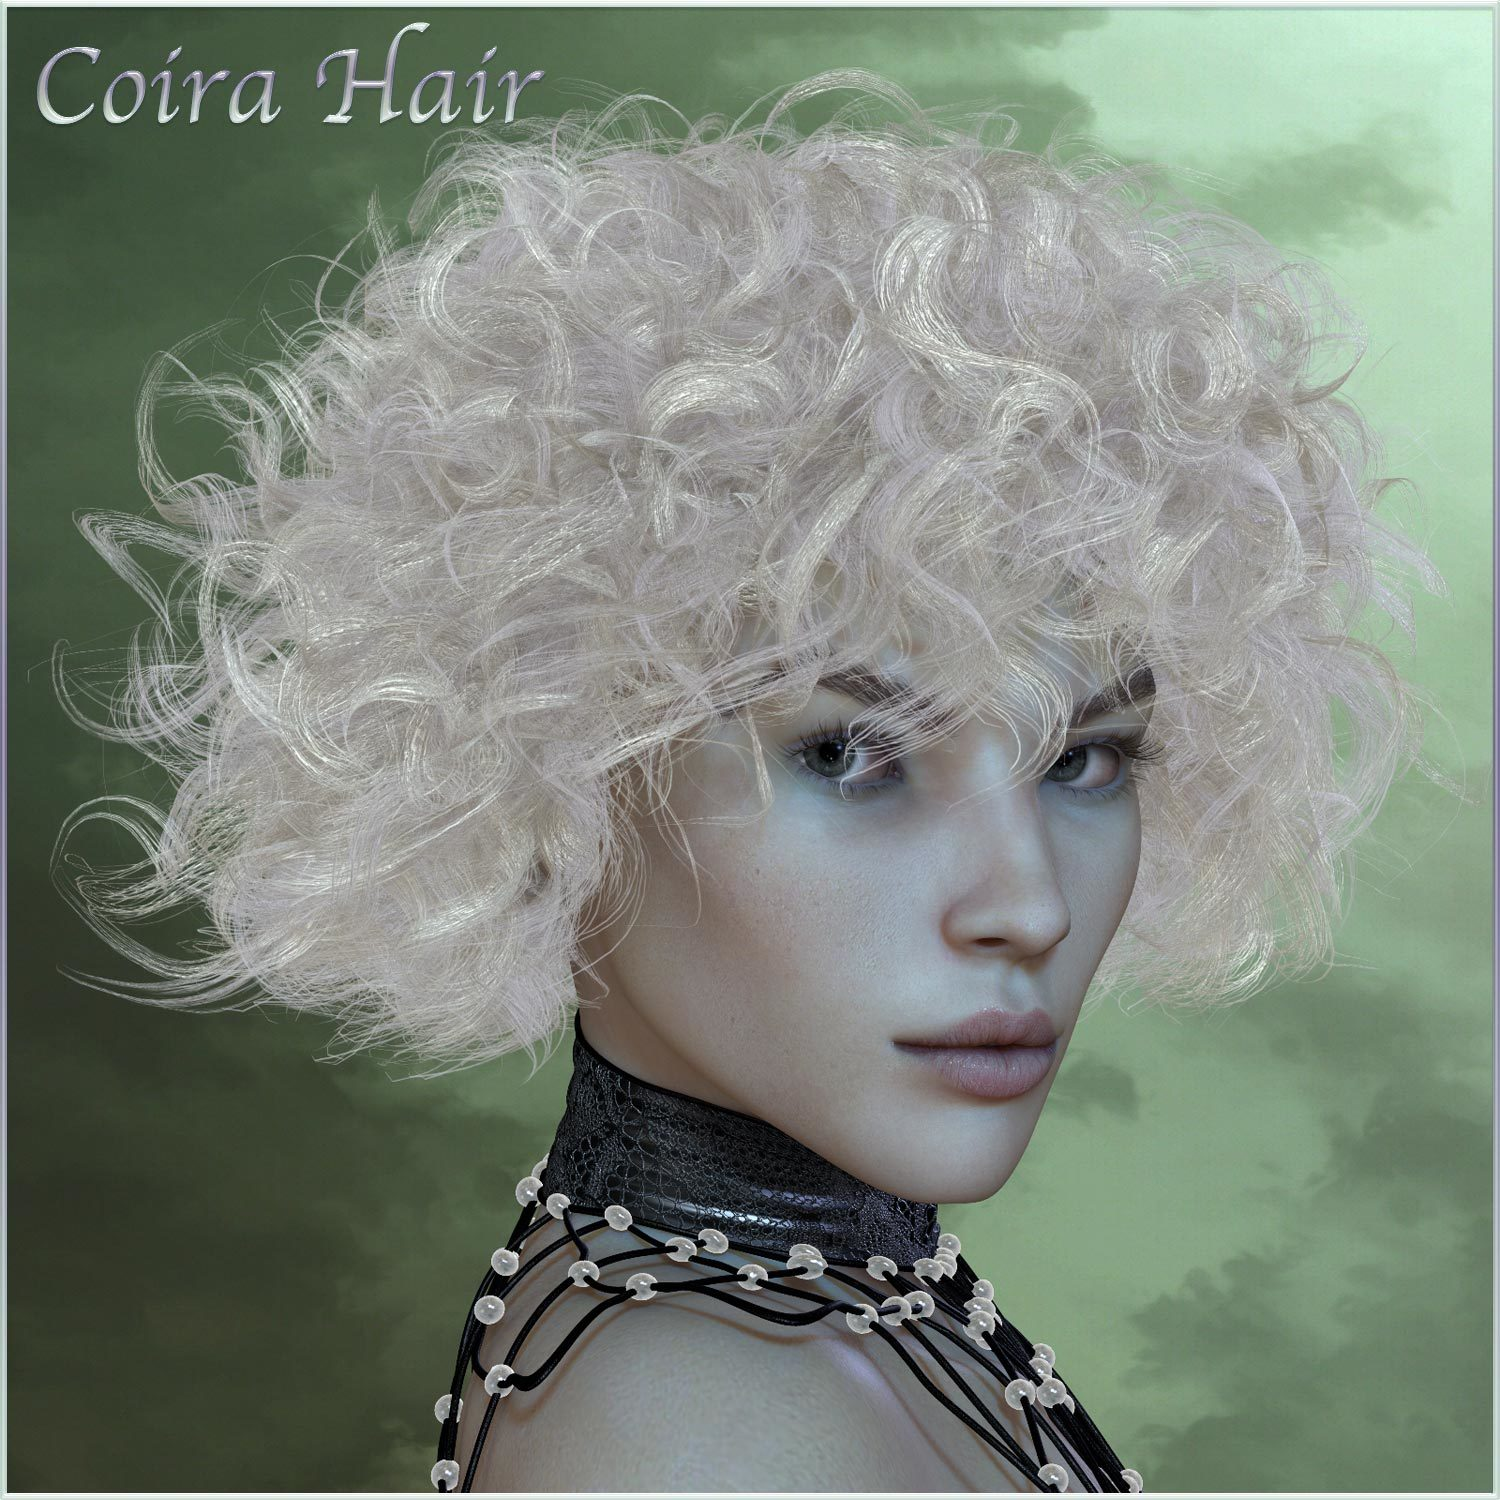 Coira Hair V4 M4 La Femme by RPublishing